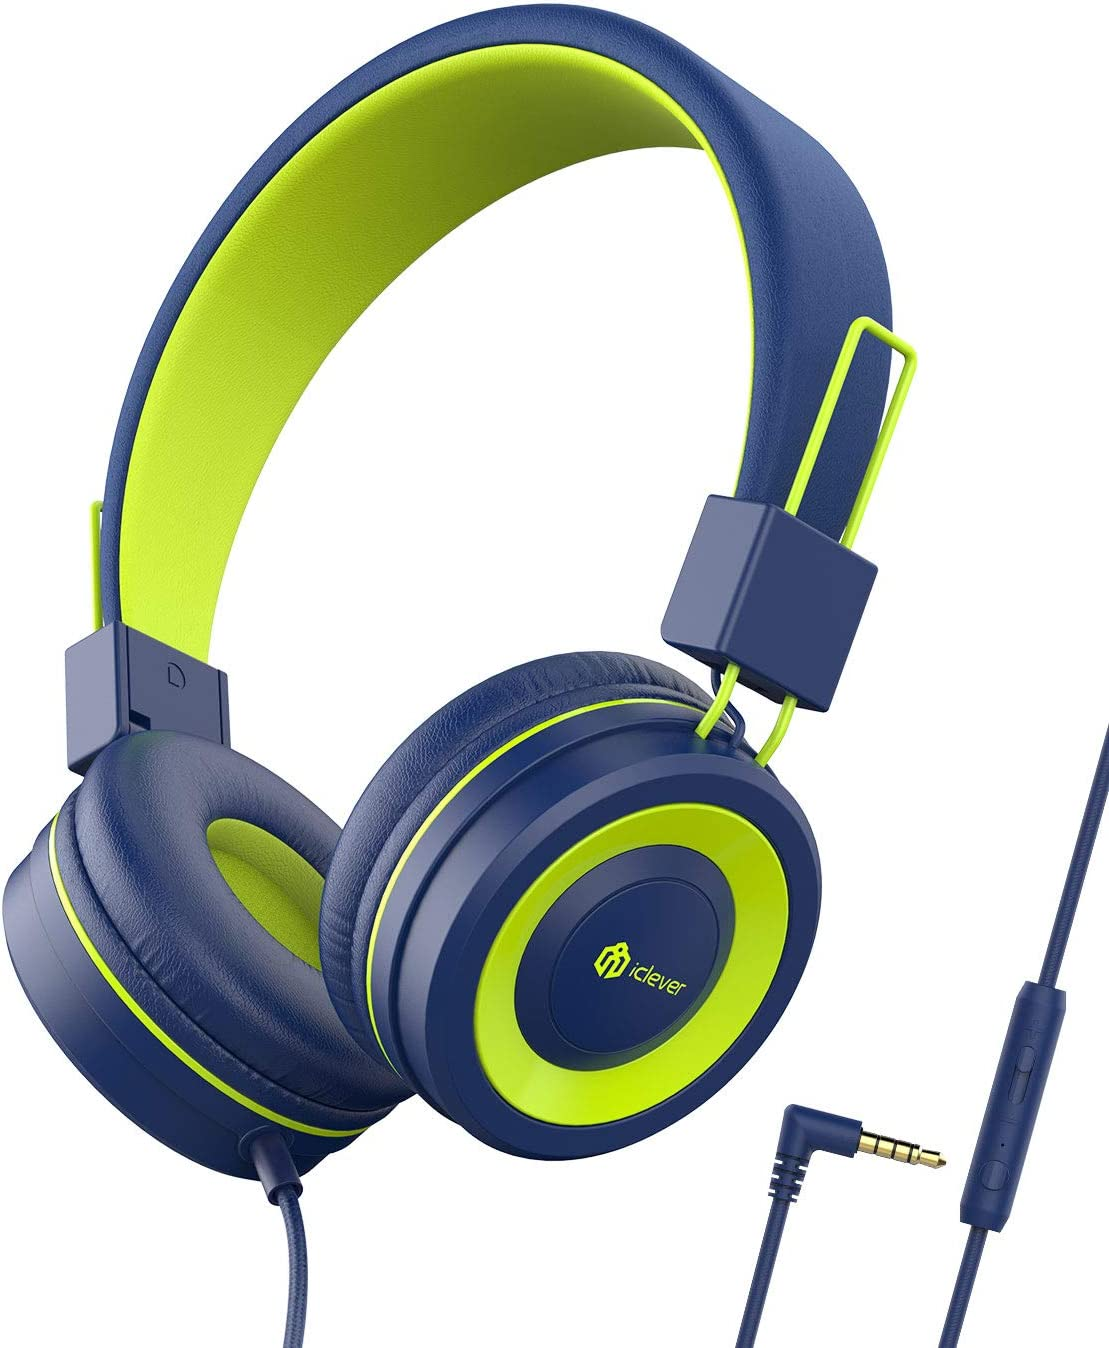 iClever Kids Headphones - Wired Headphones Kids, Adjustable Headband, Stereo Sound, Foldable, Untangled Wires, 3.5mm Aux Jack, 94dB Volume Limited - Childrens Headphones on Ear, Blue (Blue)